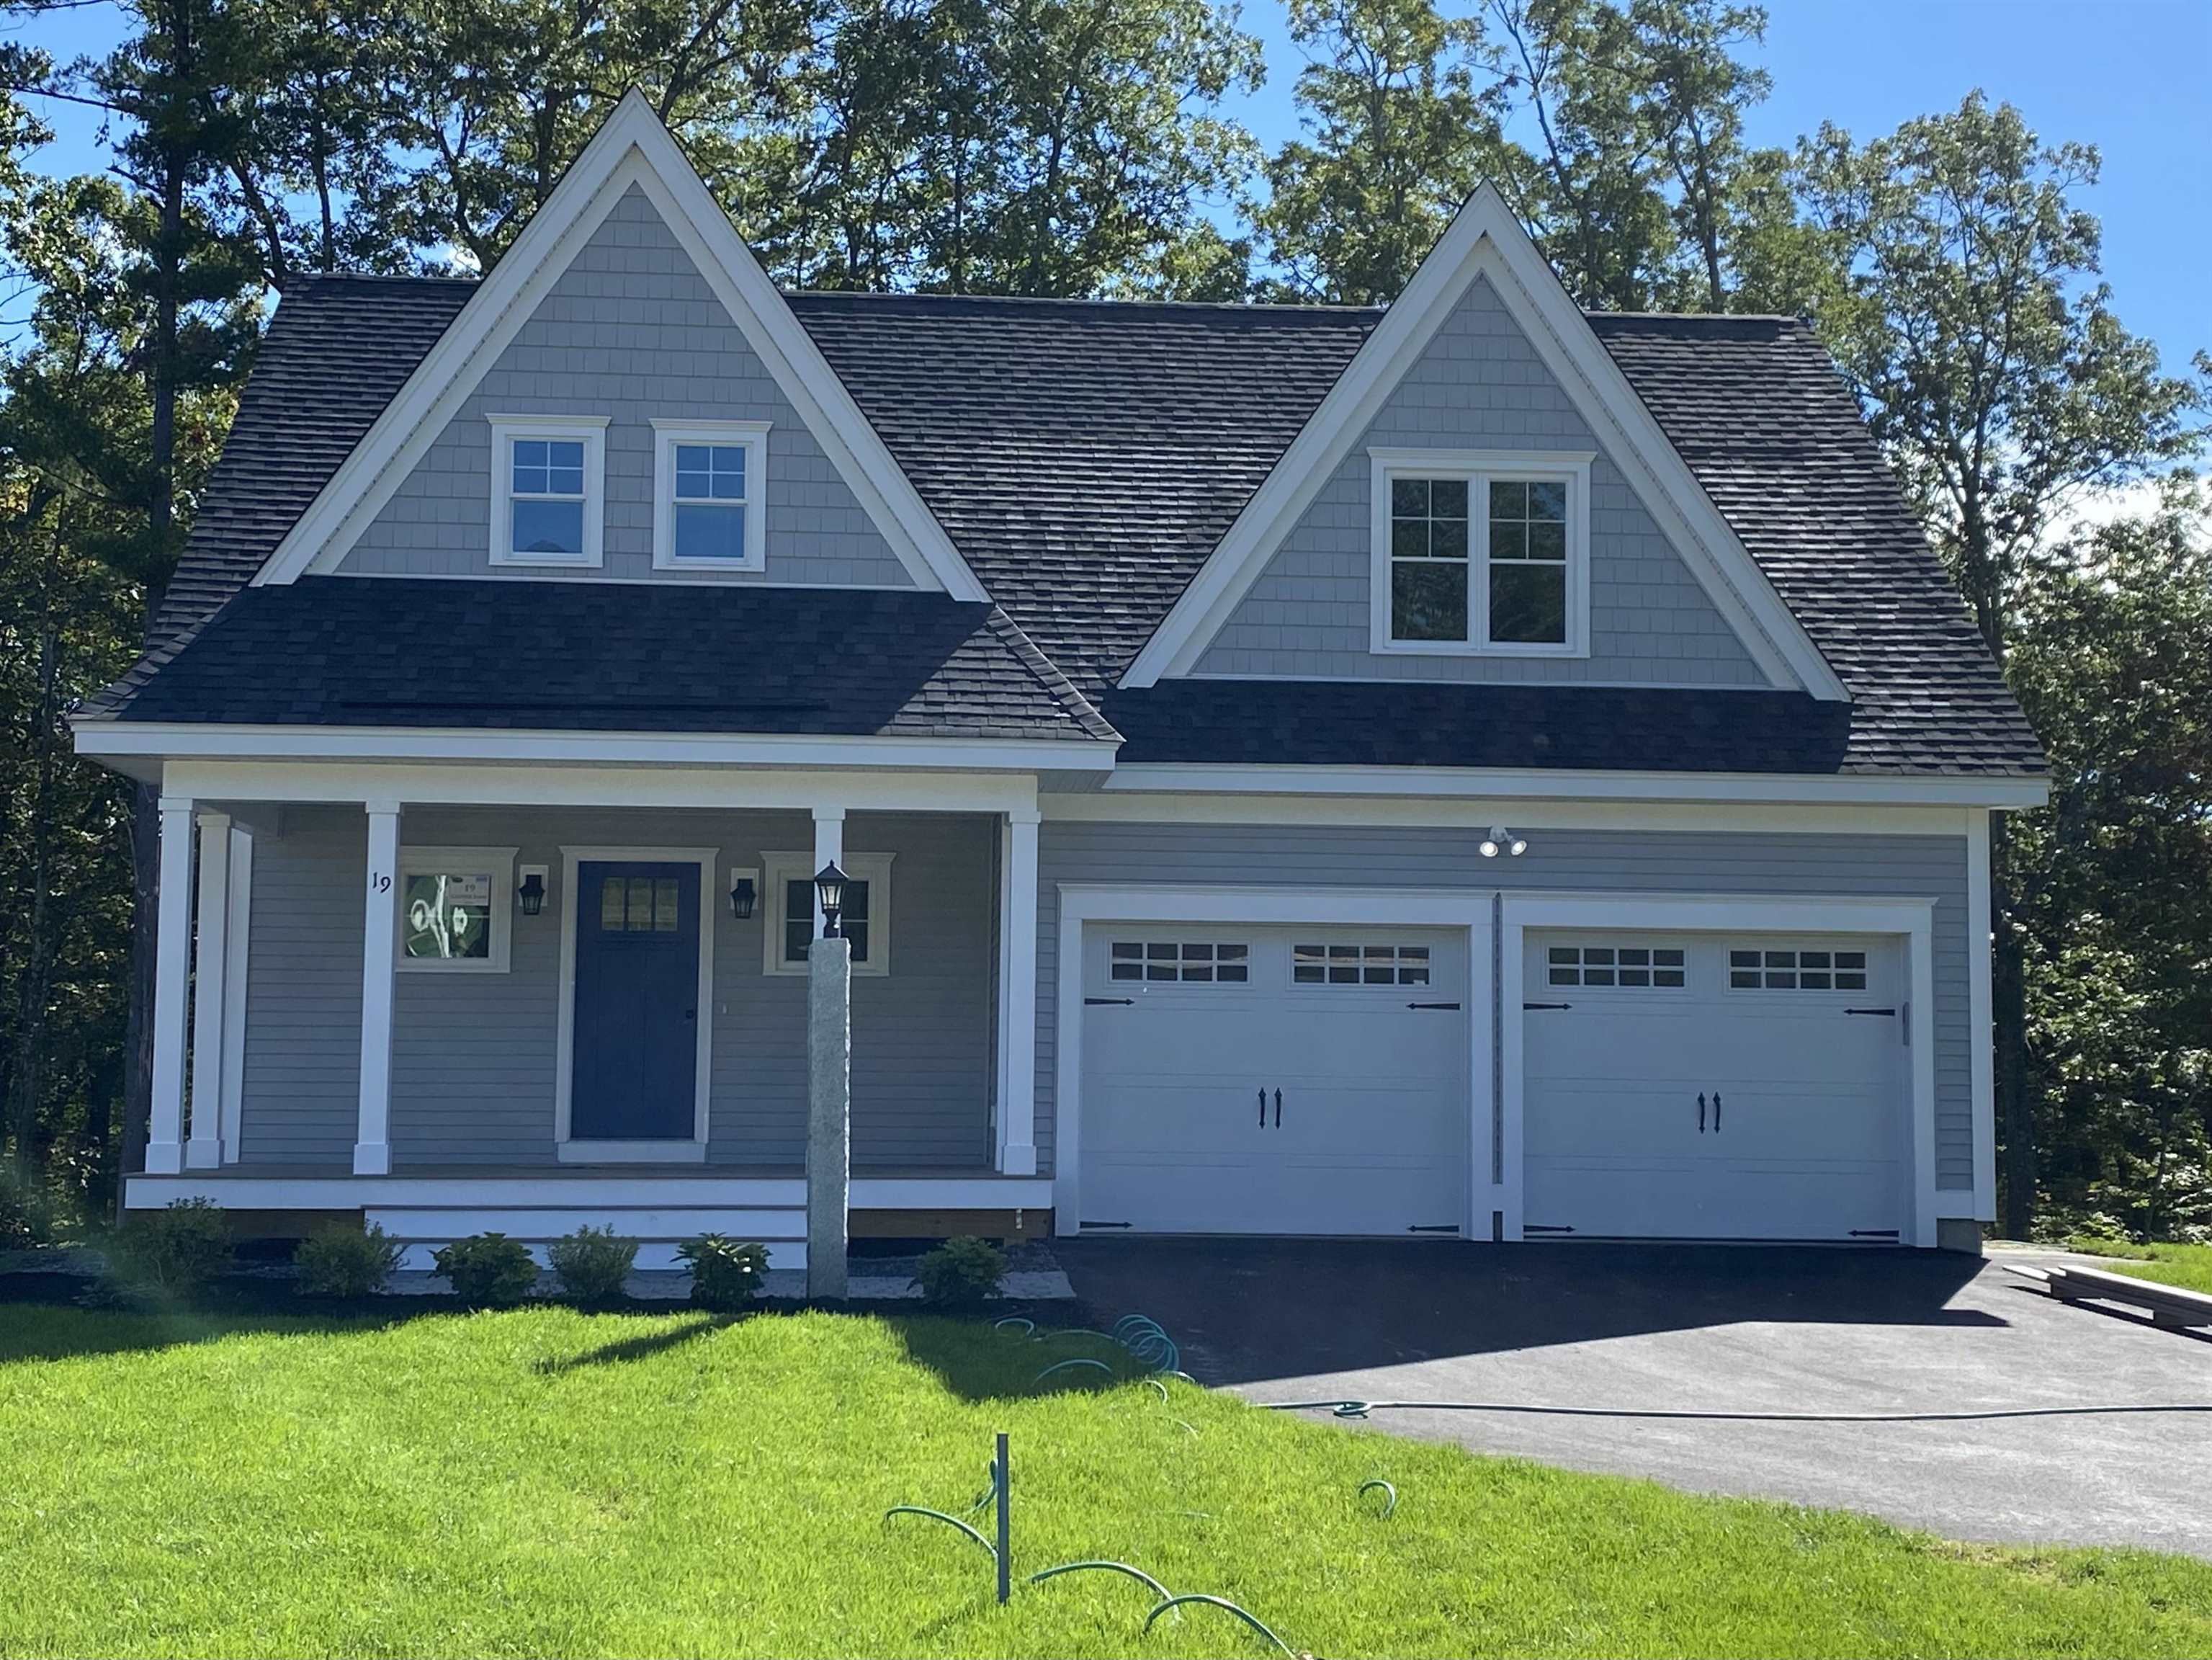 Photo of Lot 89 Lorden Commons Londonderry NH 03053